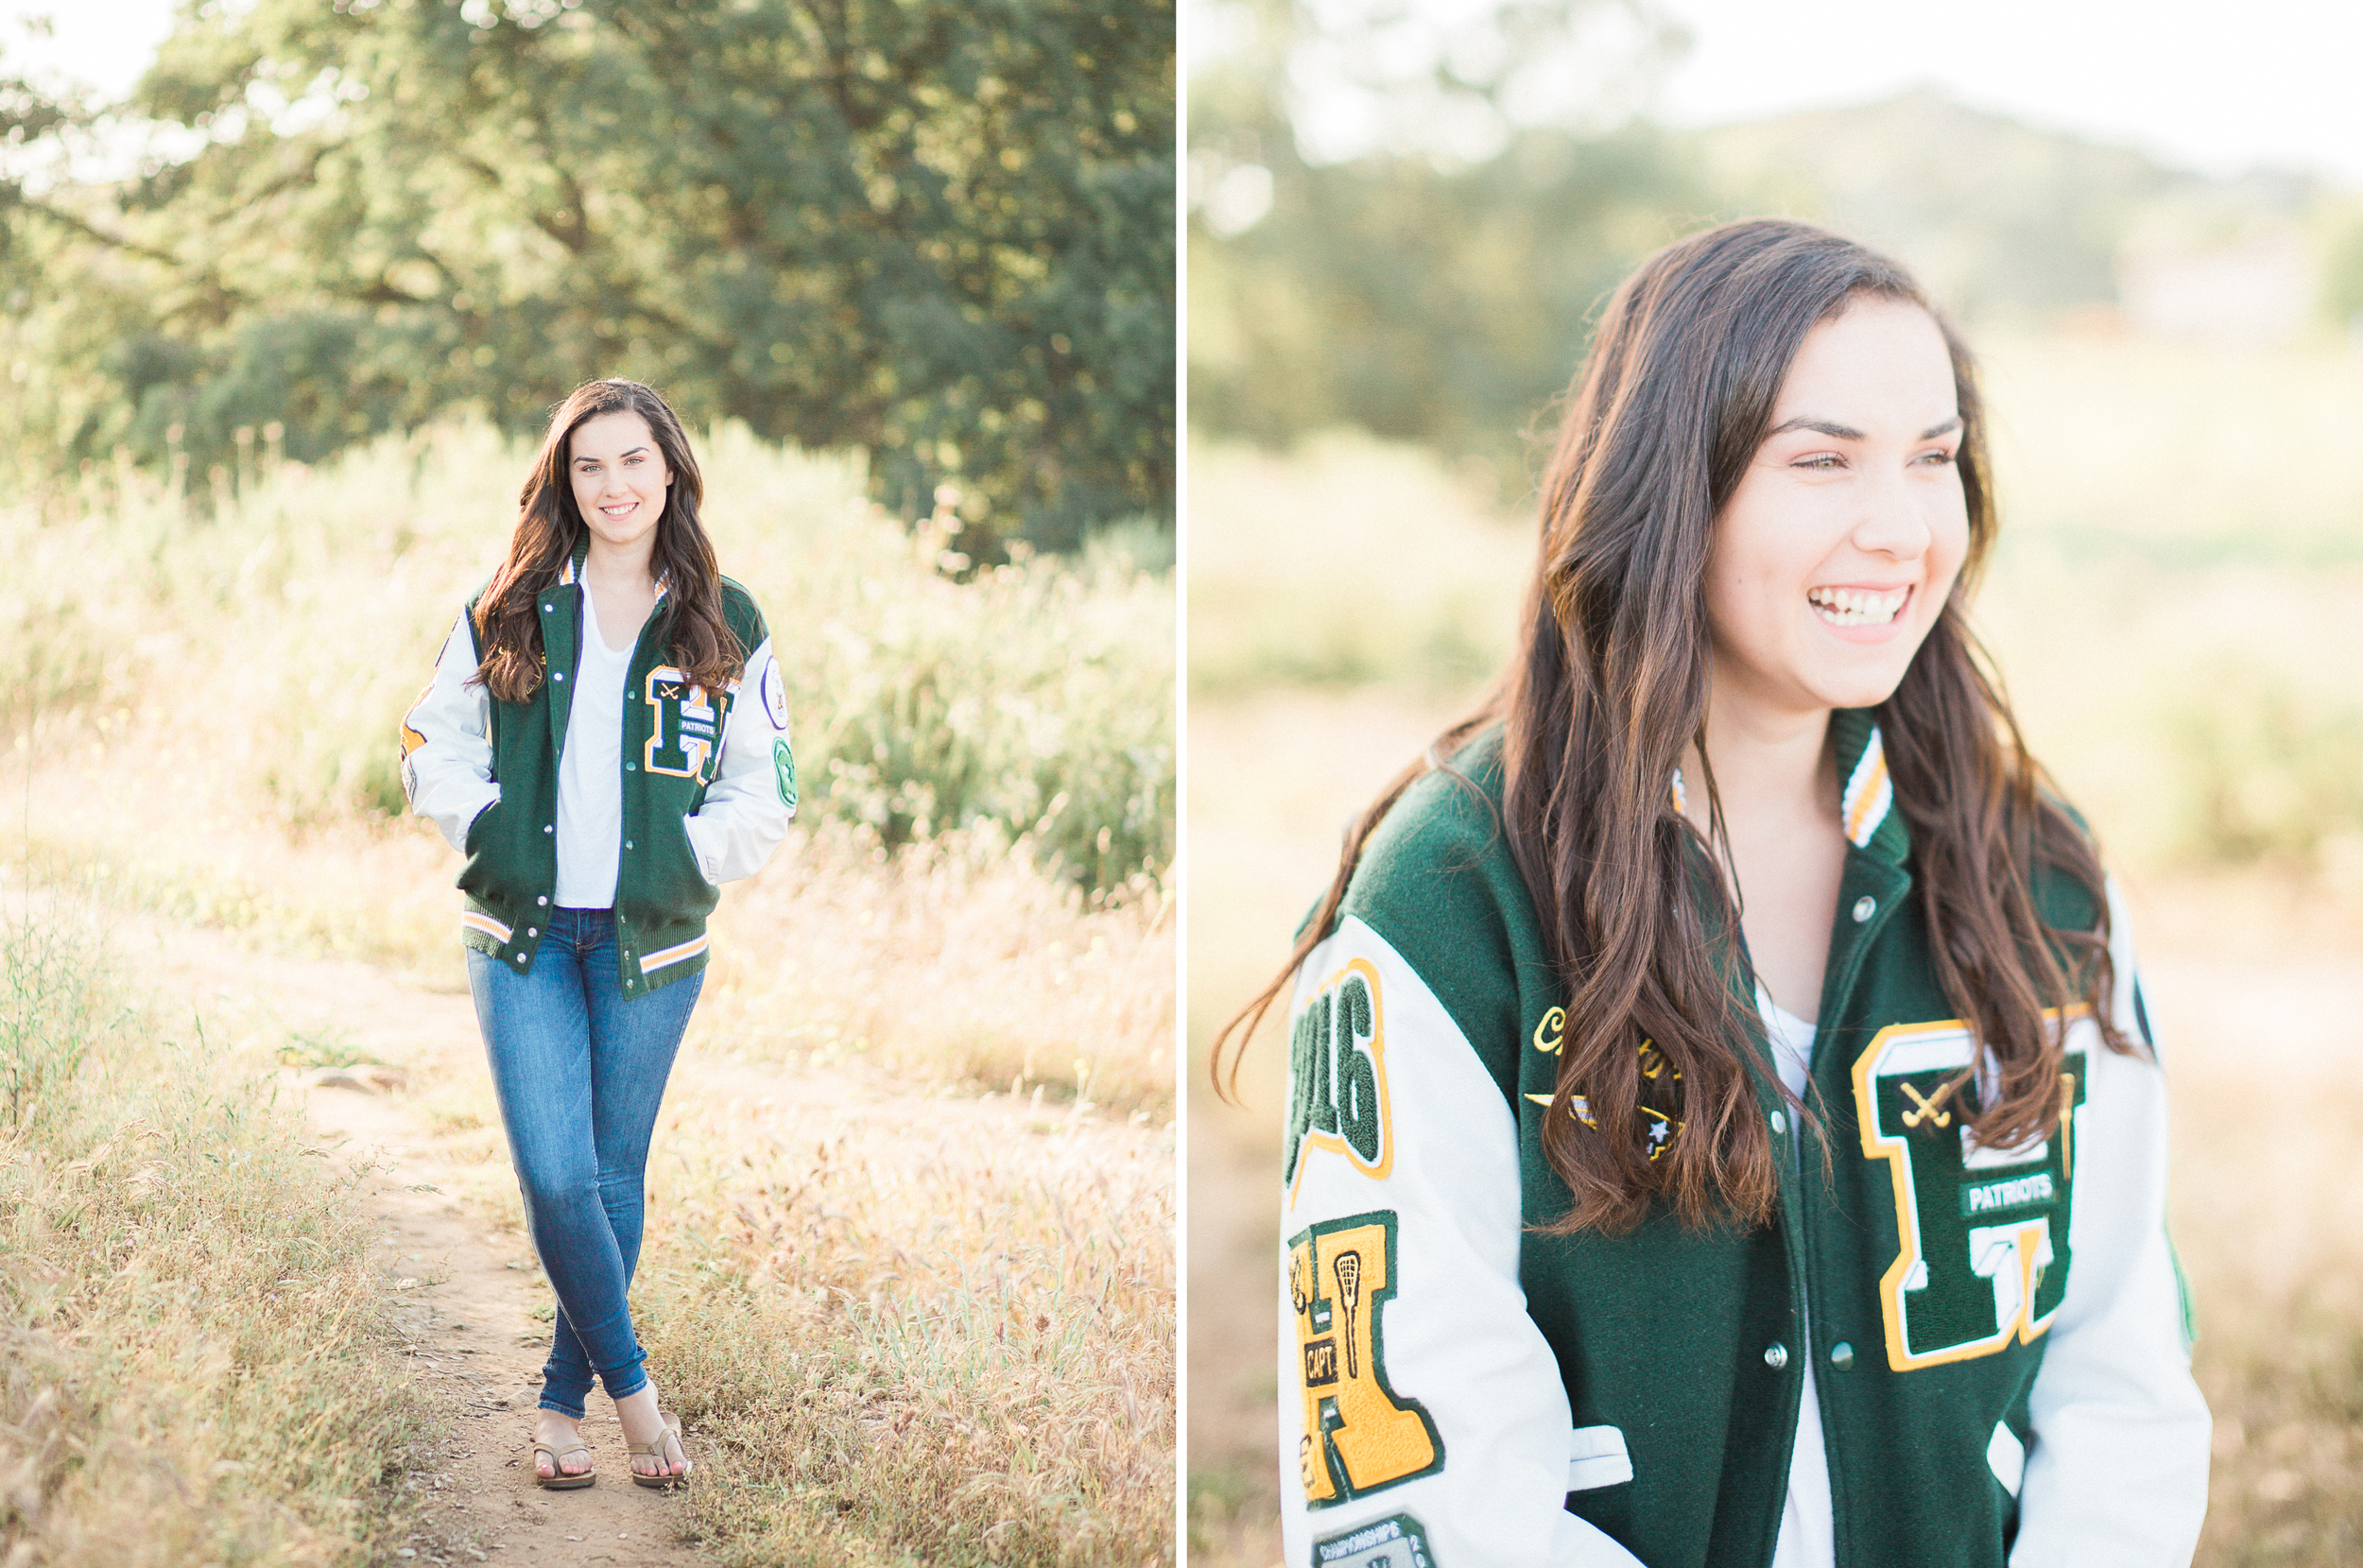 alpine-senior-photos-1.jpg